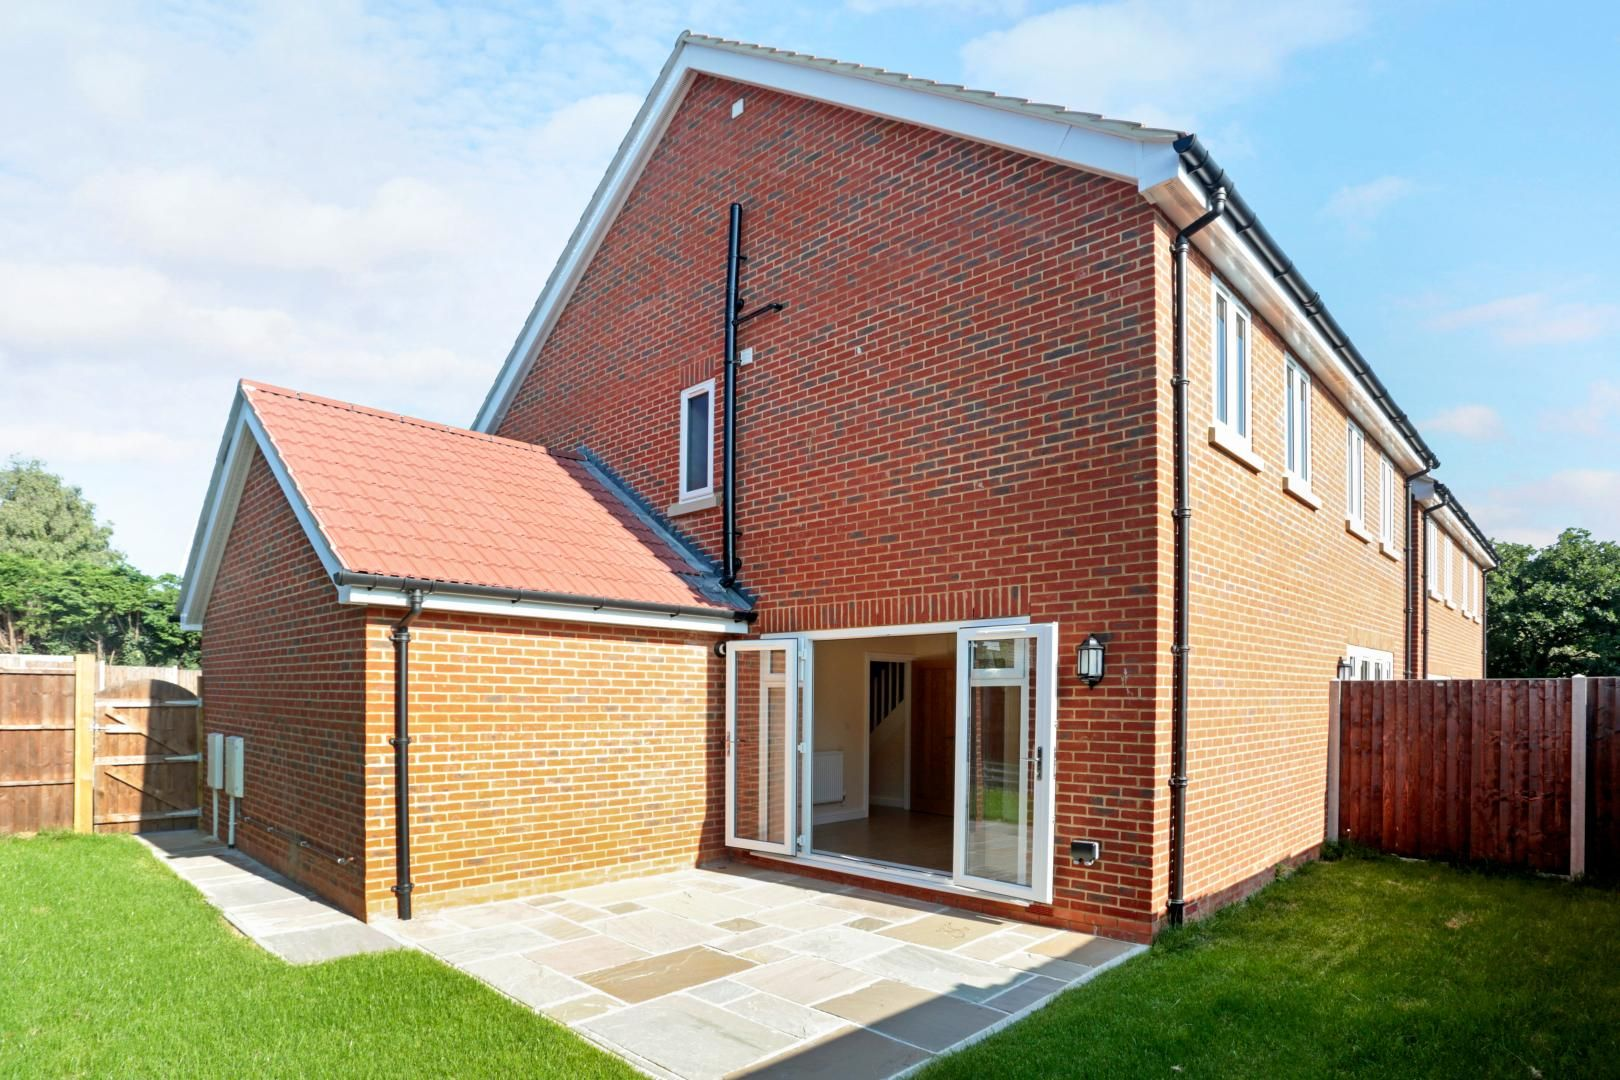 4 bed house for sale in Zara Court, ME8